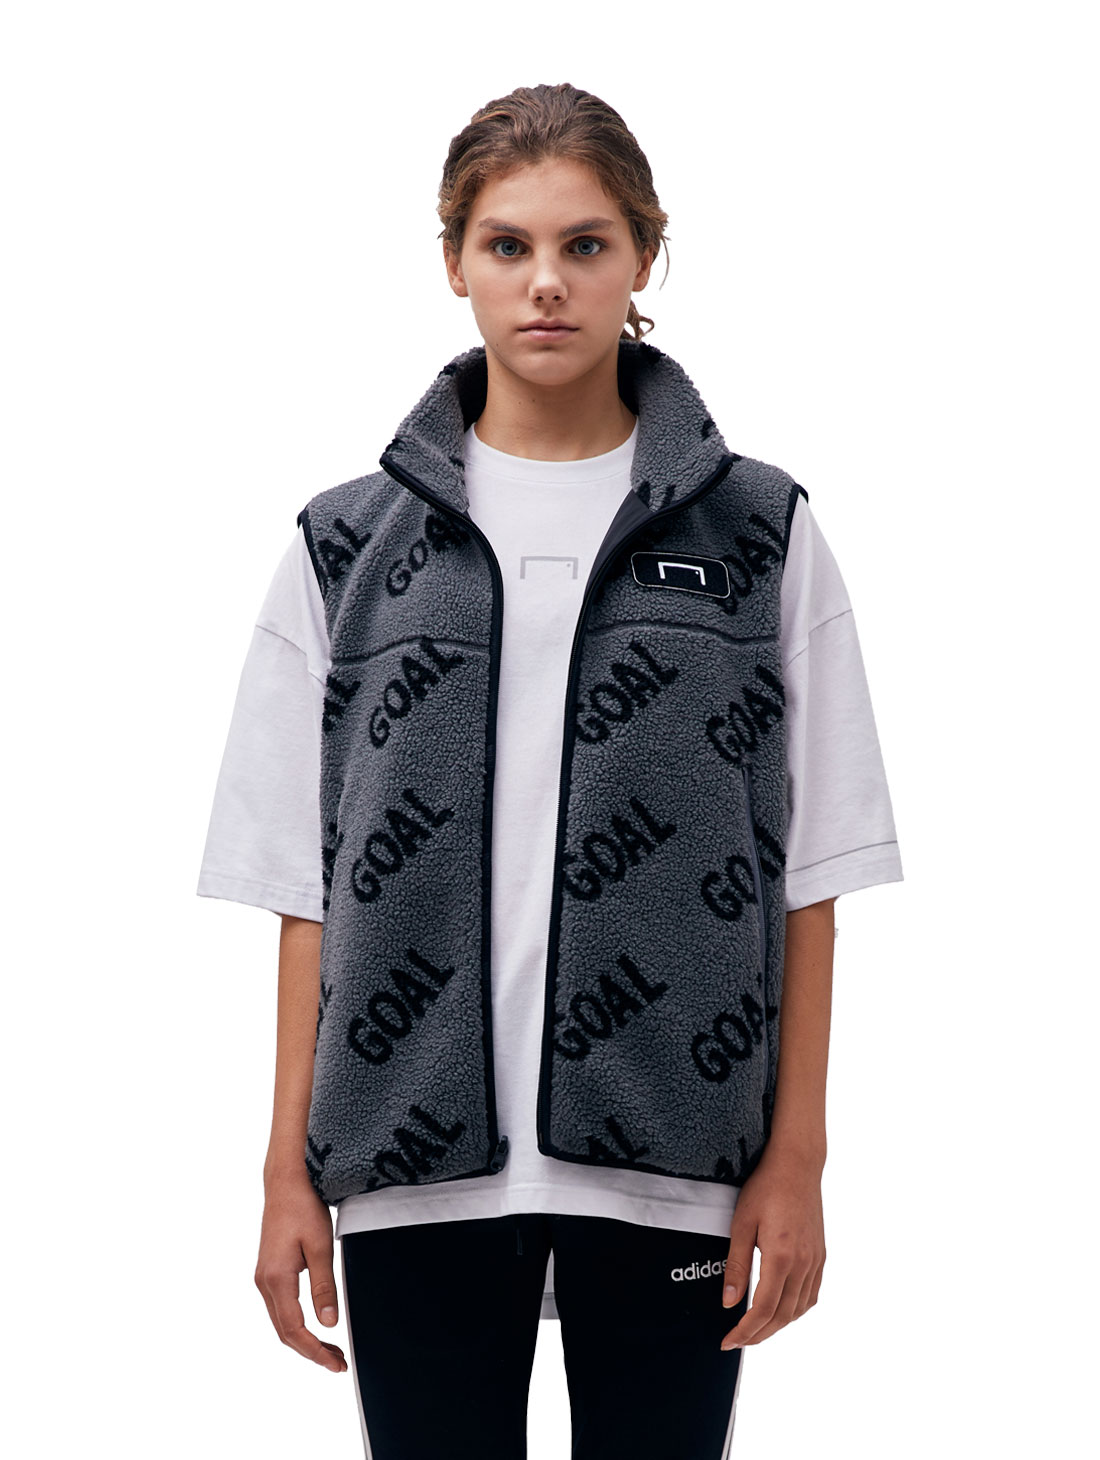 REVERSIBLE FLEECE VEST - GREY/BLACK